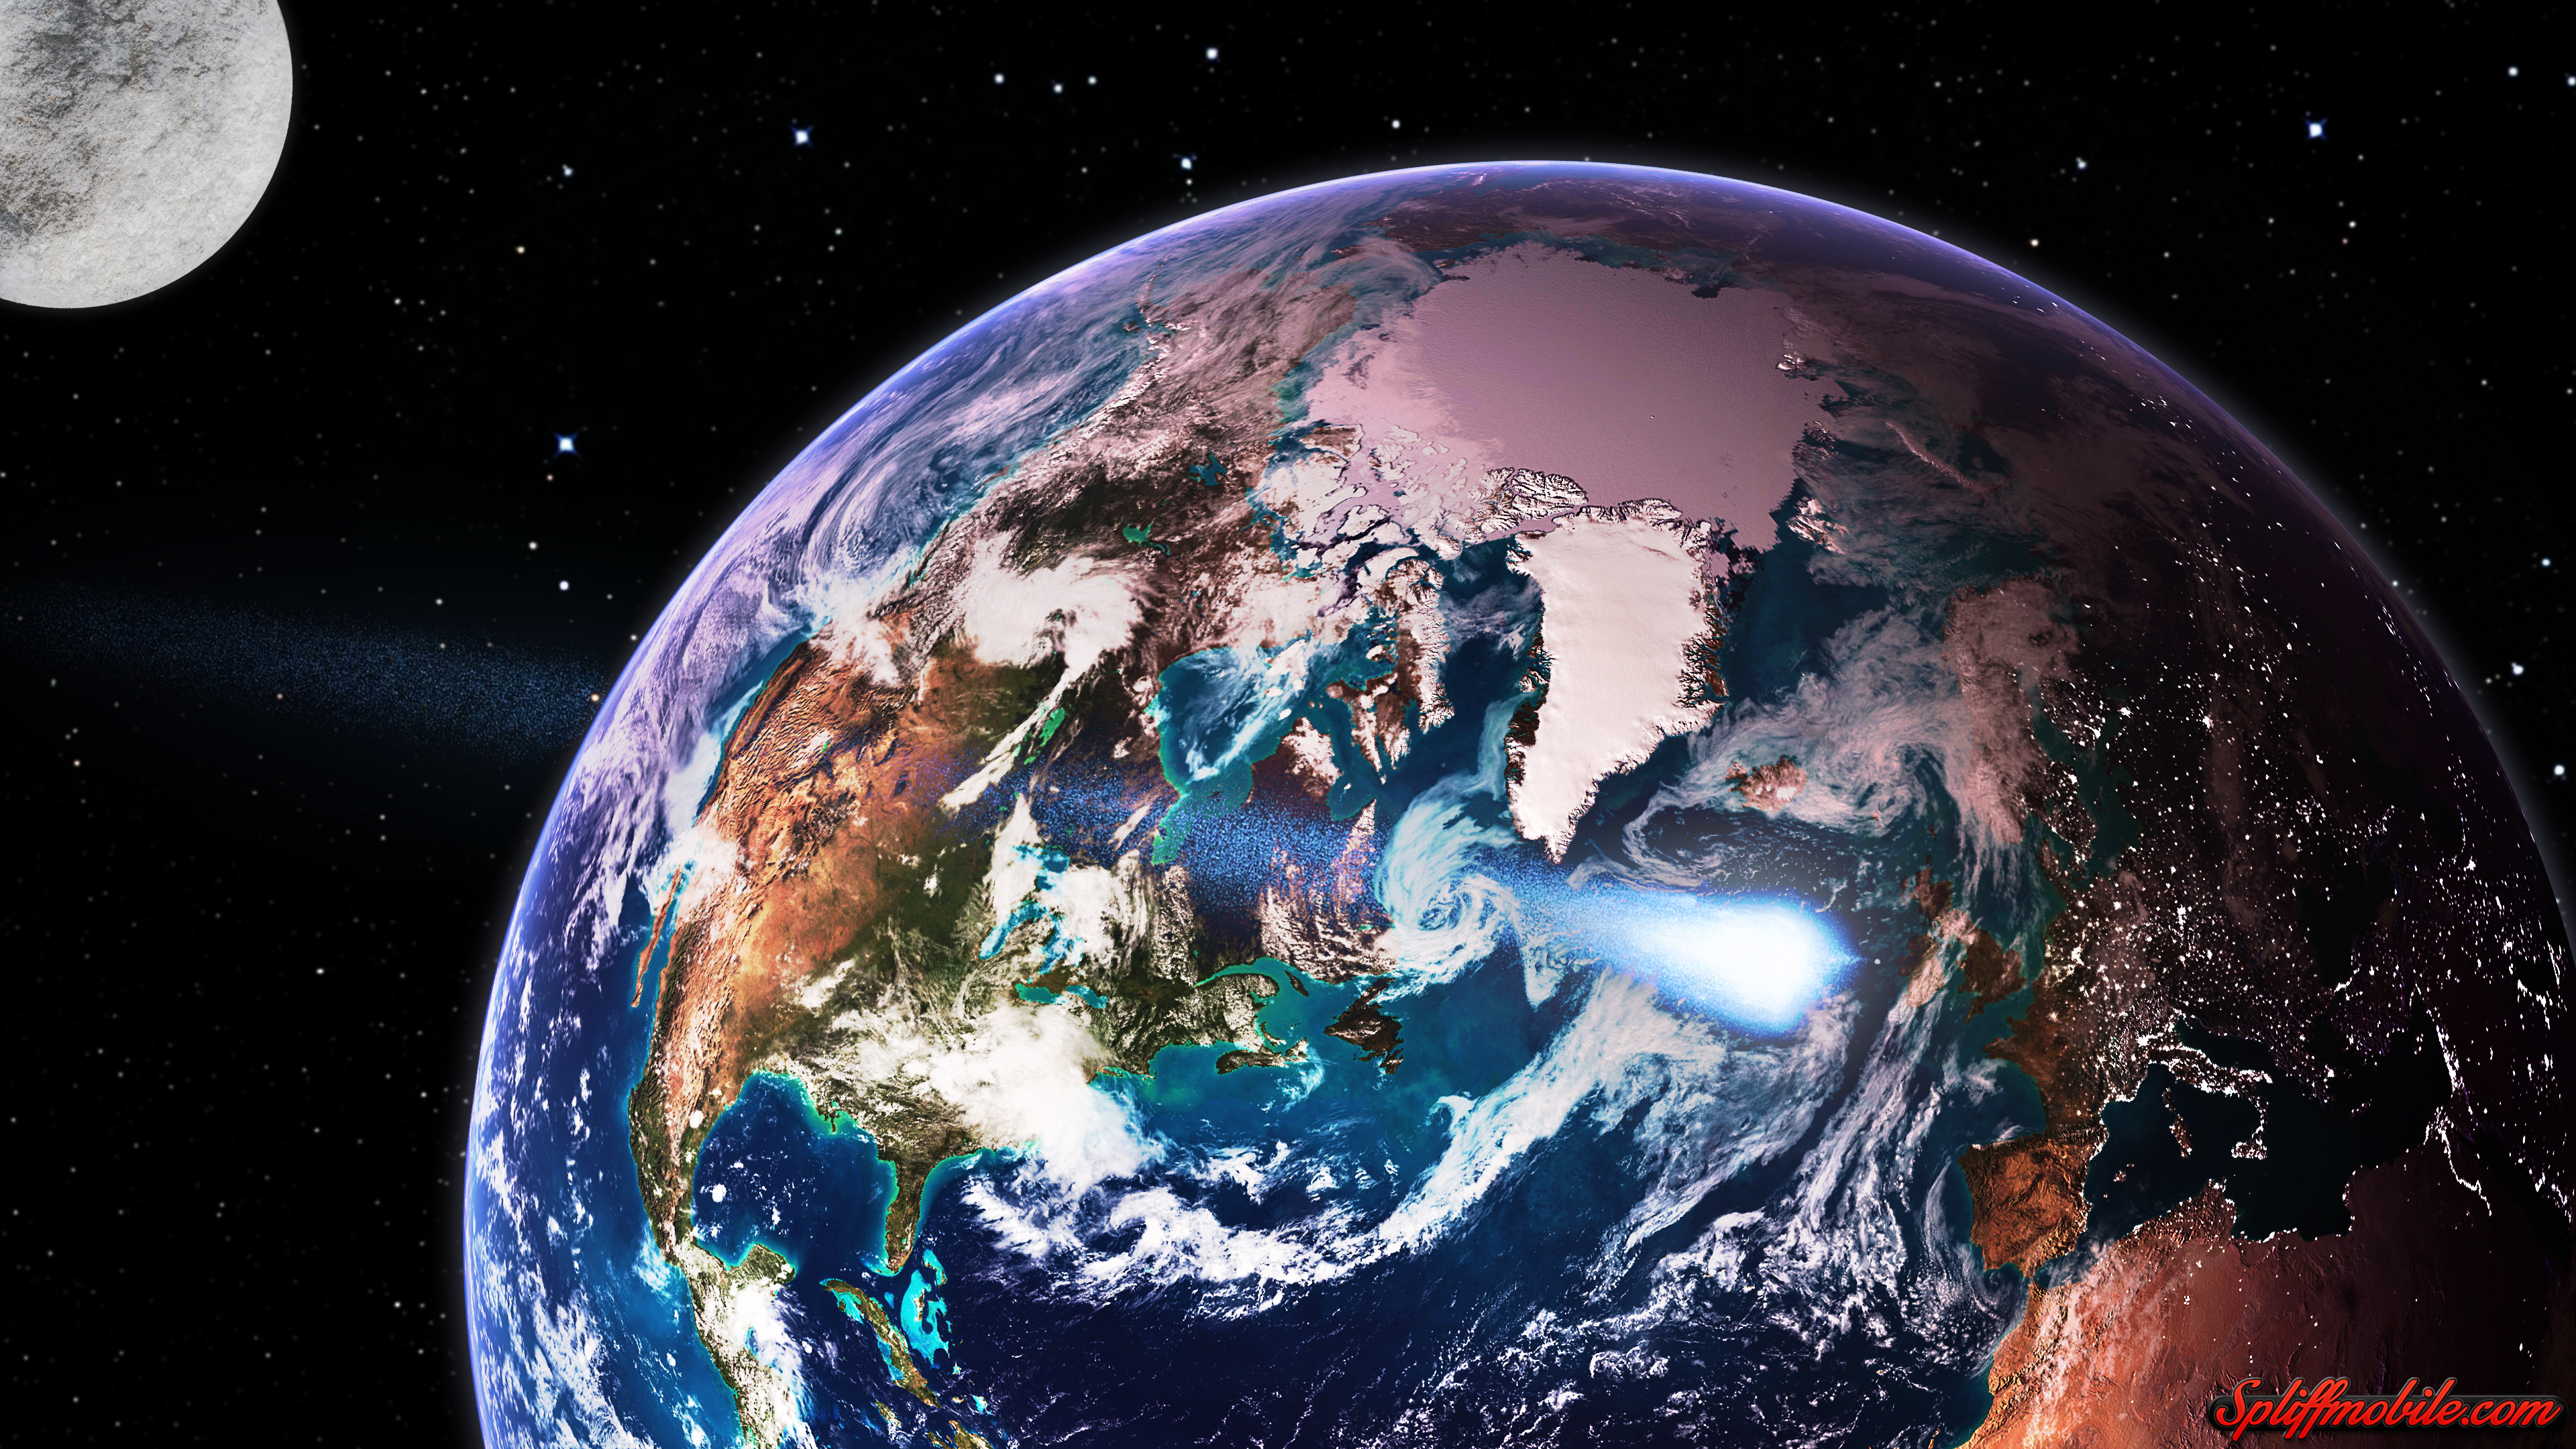 Windows earth wallpapers hd wallpapers pinterest wallpaper windows earth wallpapers hd voltagebd Images